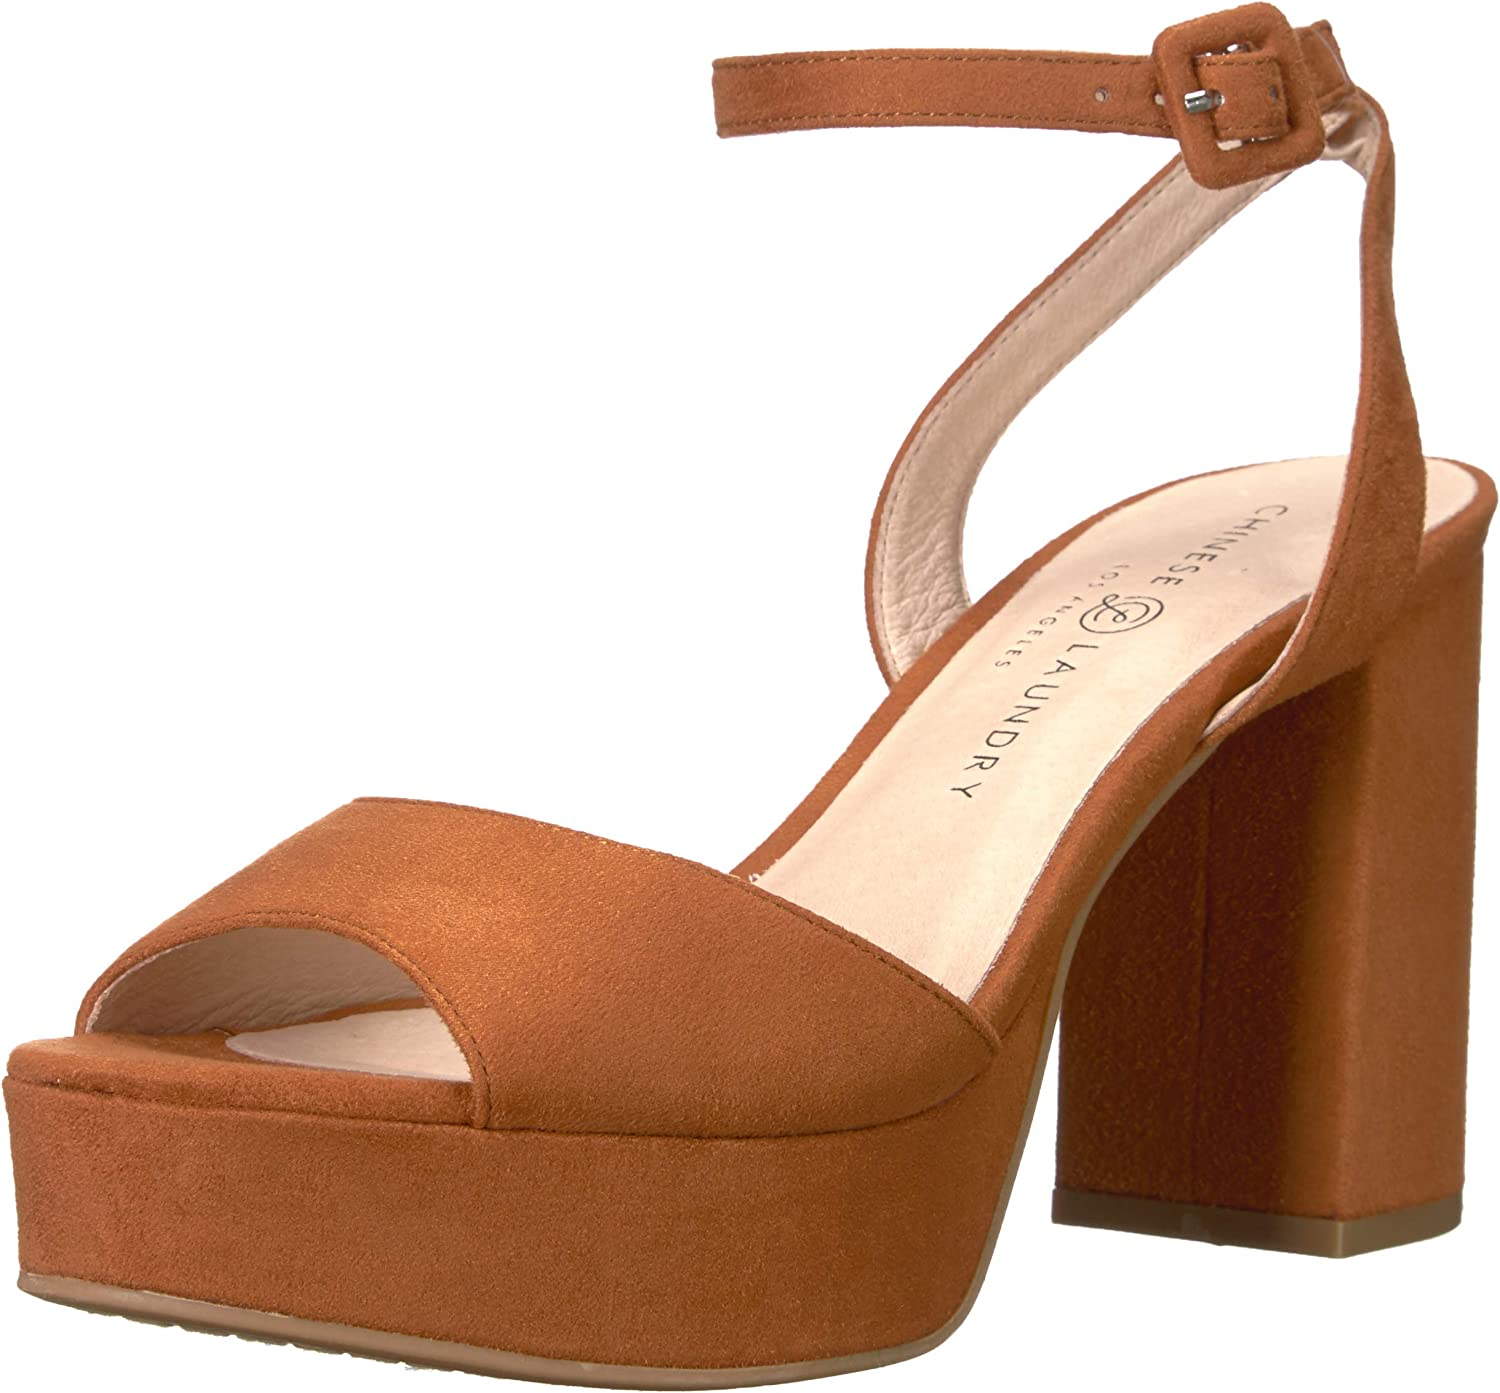 Chinese Laundry Women's Theresa Heeled Sandal